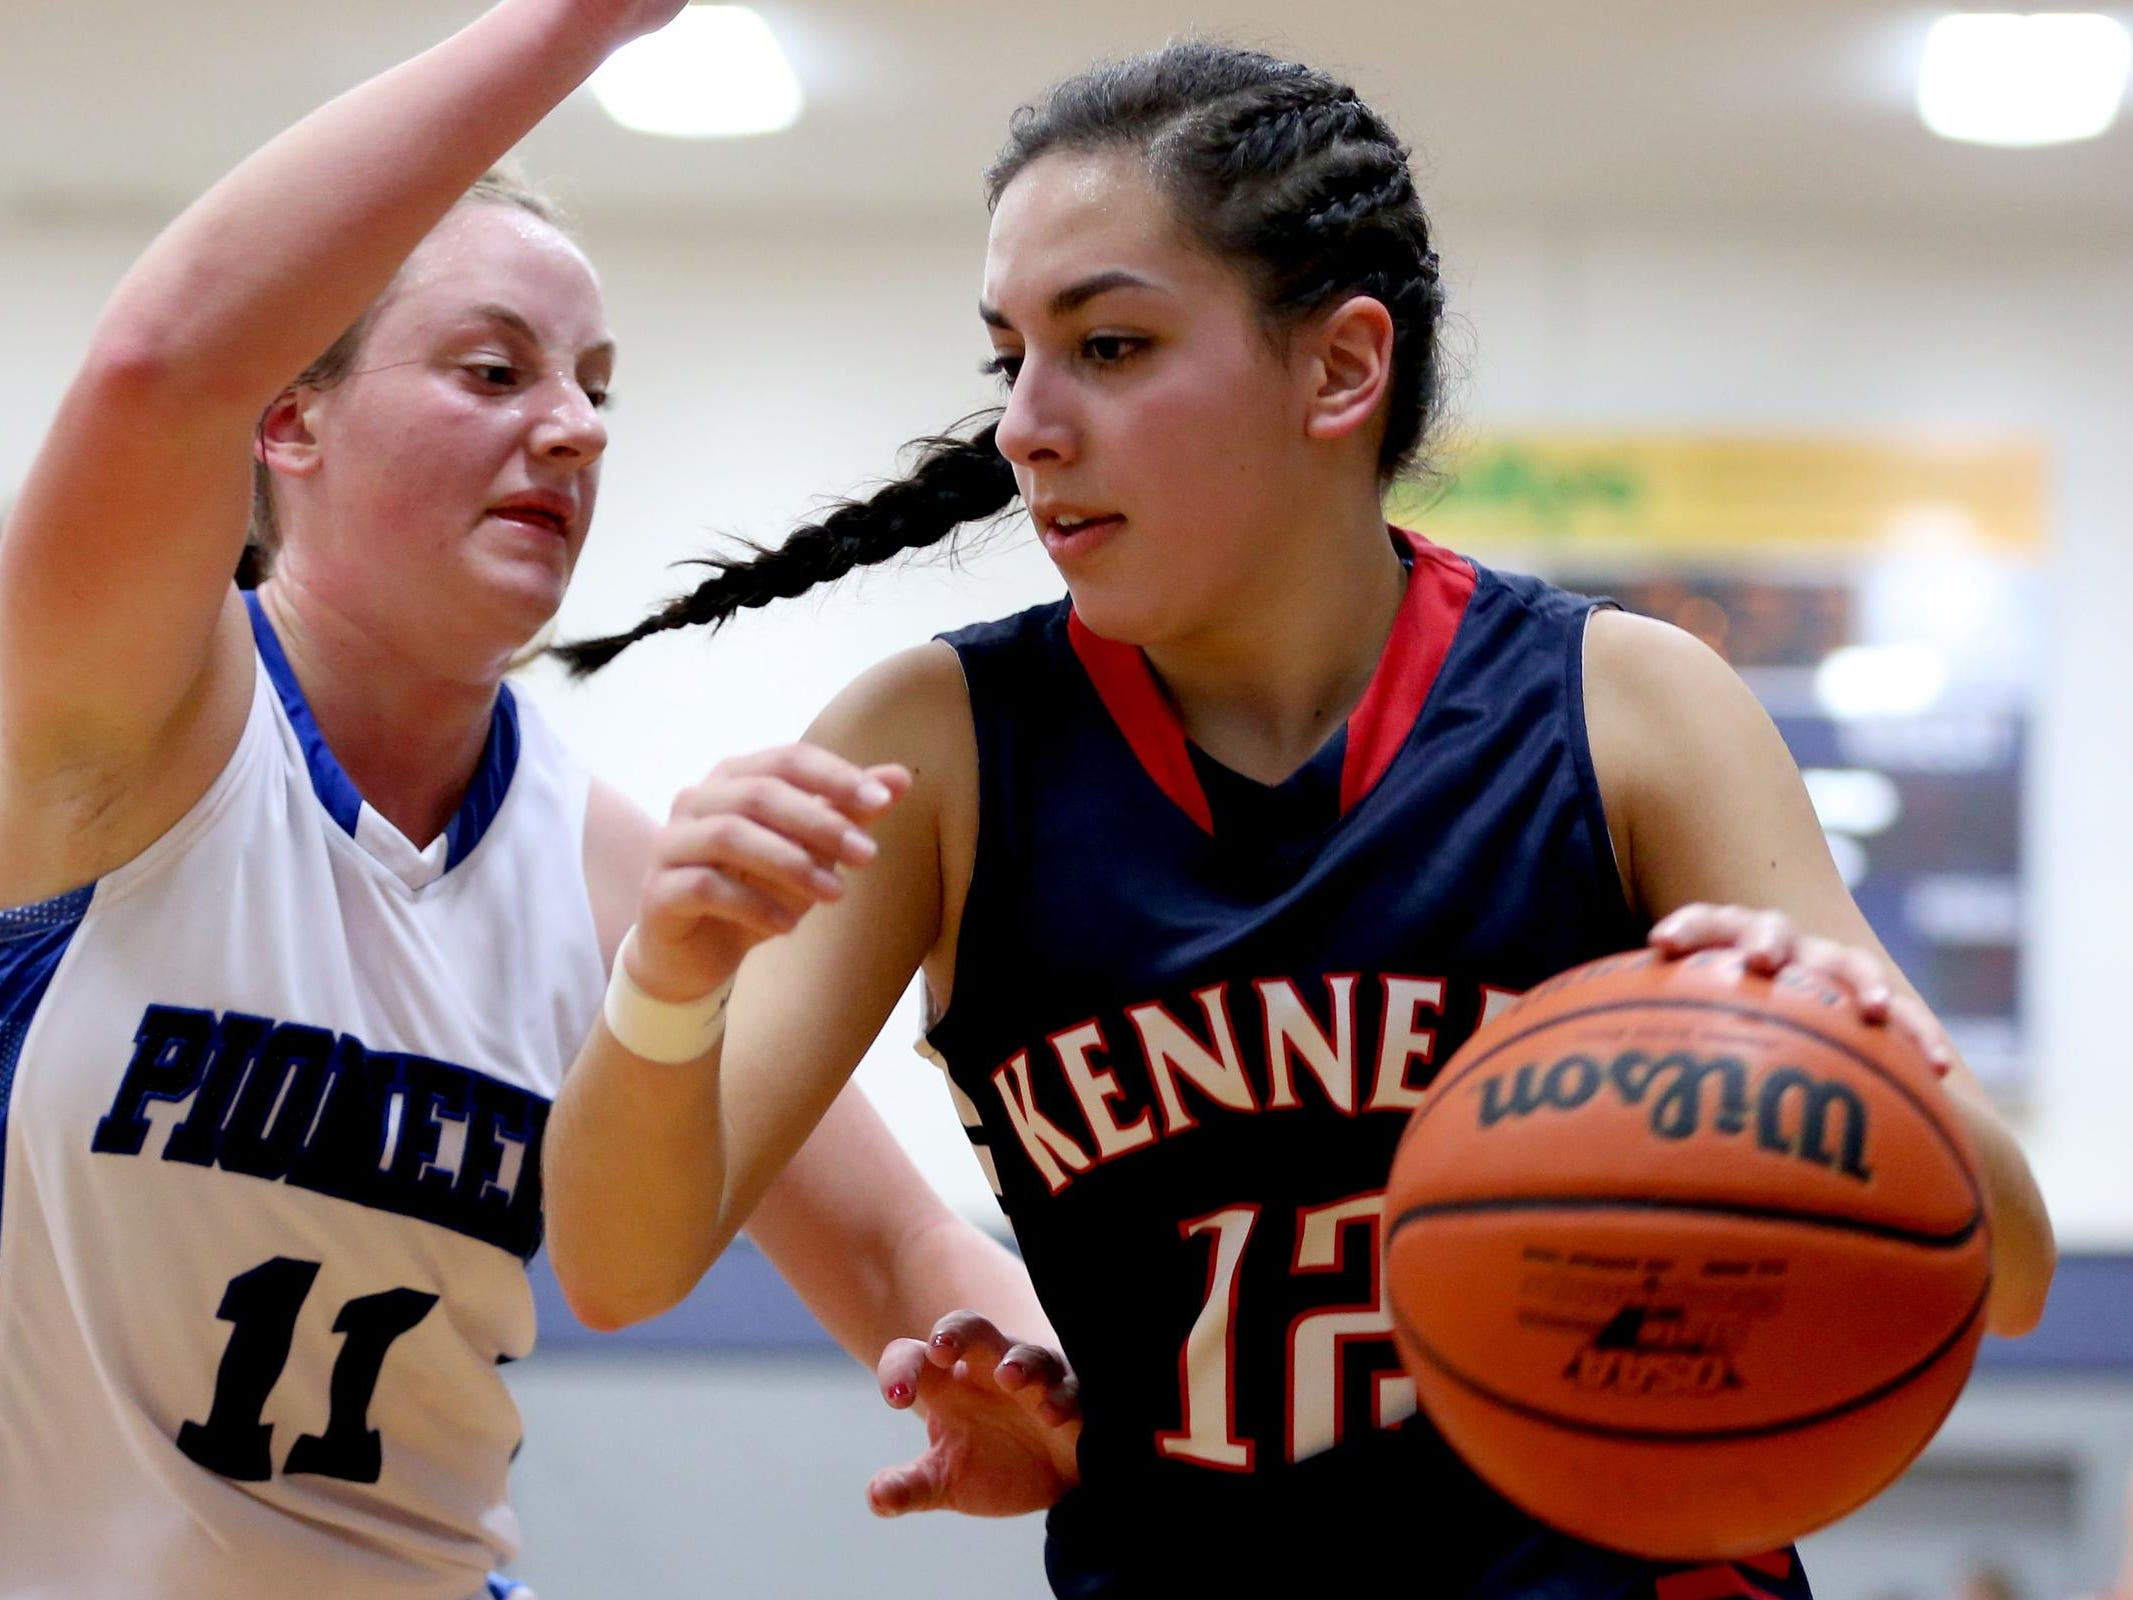 Kennedy's Lakin Susee (12) drives past Western Mennonite's Maddie Hopper (11) in the second half of the Kennedy vs. Western Mennonite girl's basketball game at Western Mennonite High School in Salem on Wednesday, Dec. 16, 2015. Kennedy won the game 44-41.